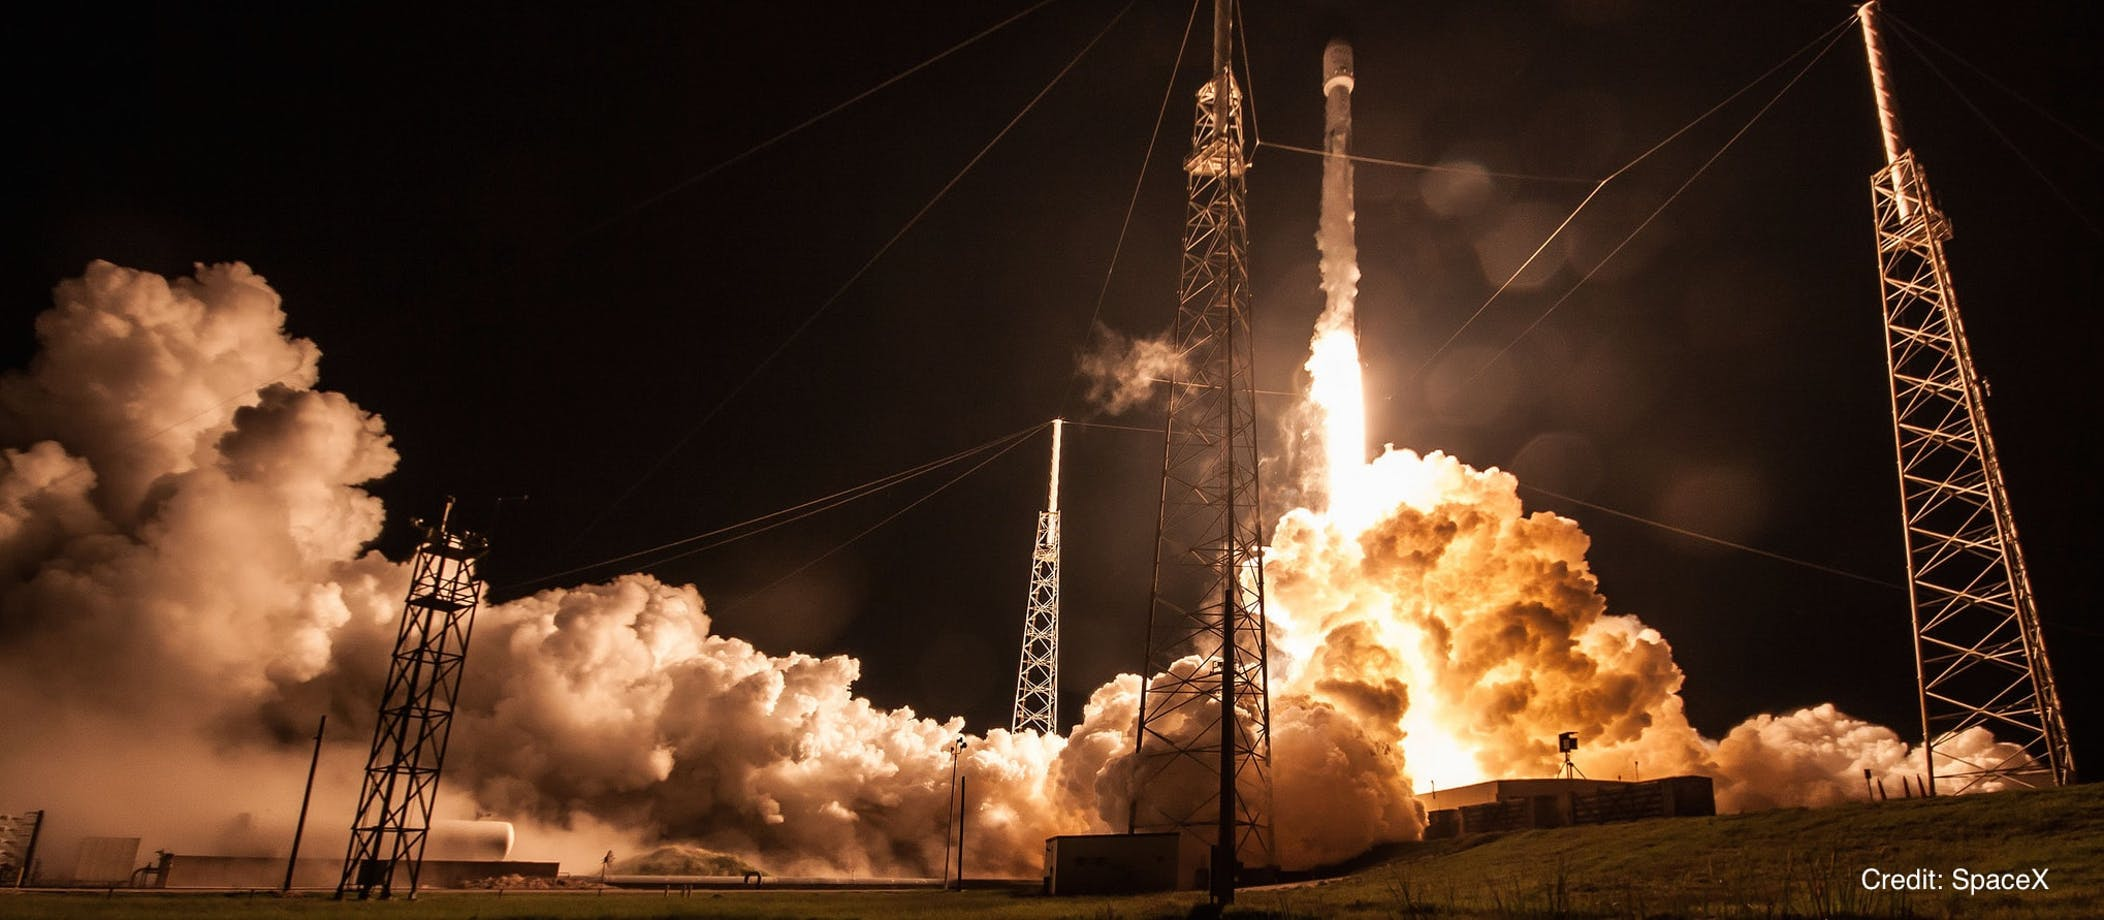 Elon Musk, a SpaceX rocket launch and workplace safety?